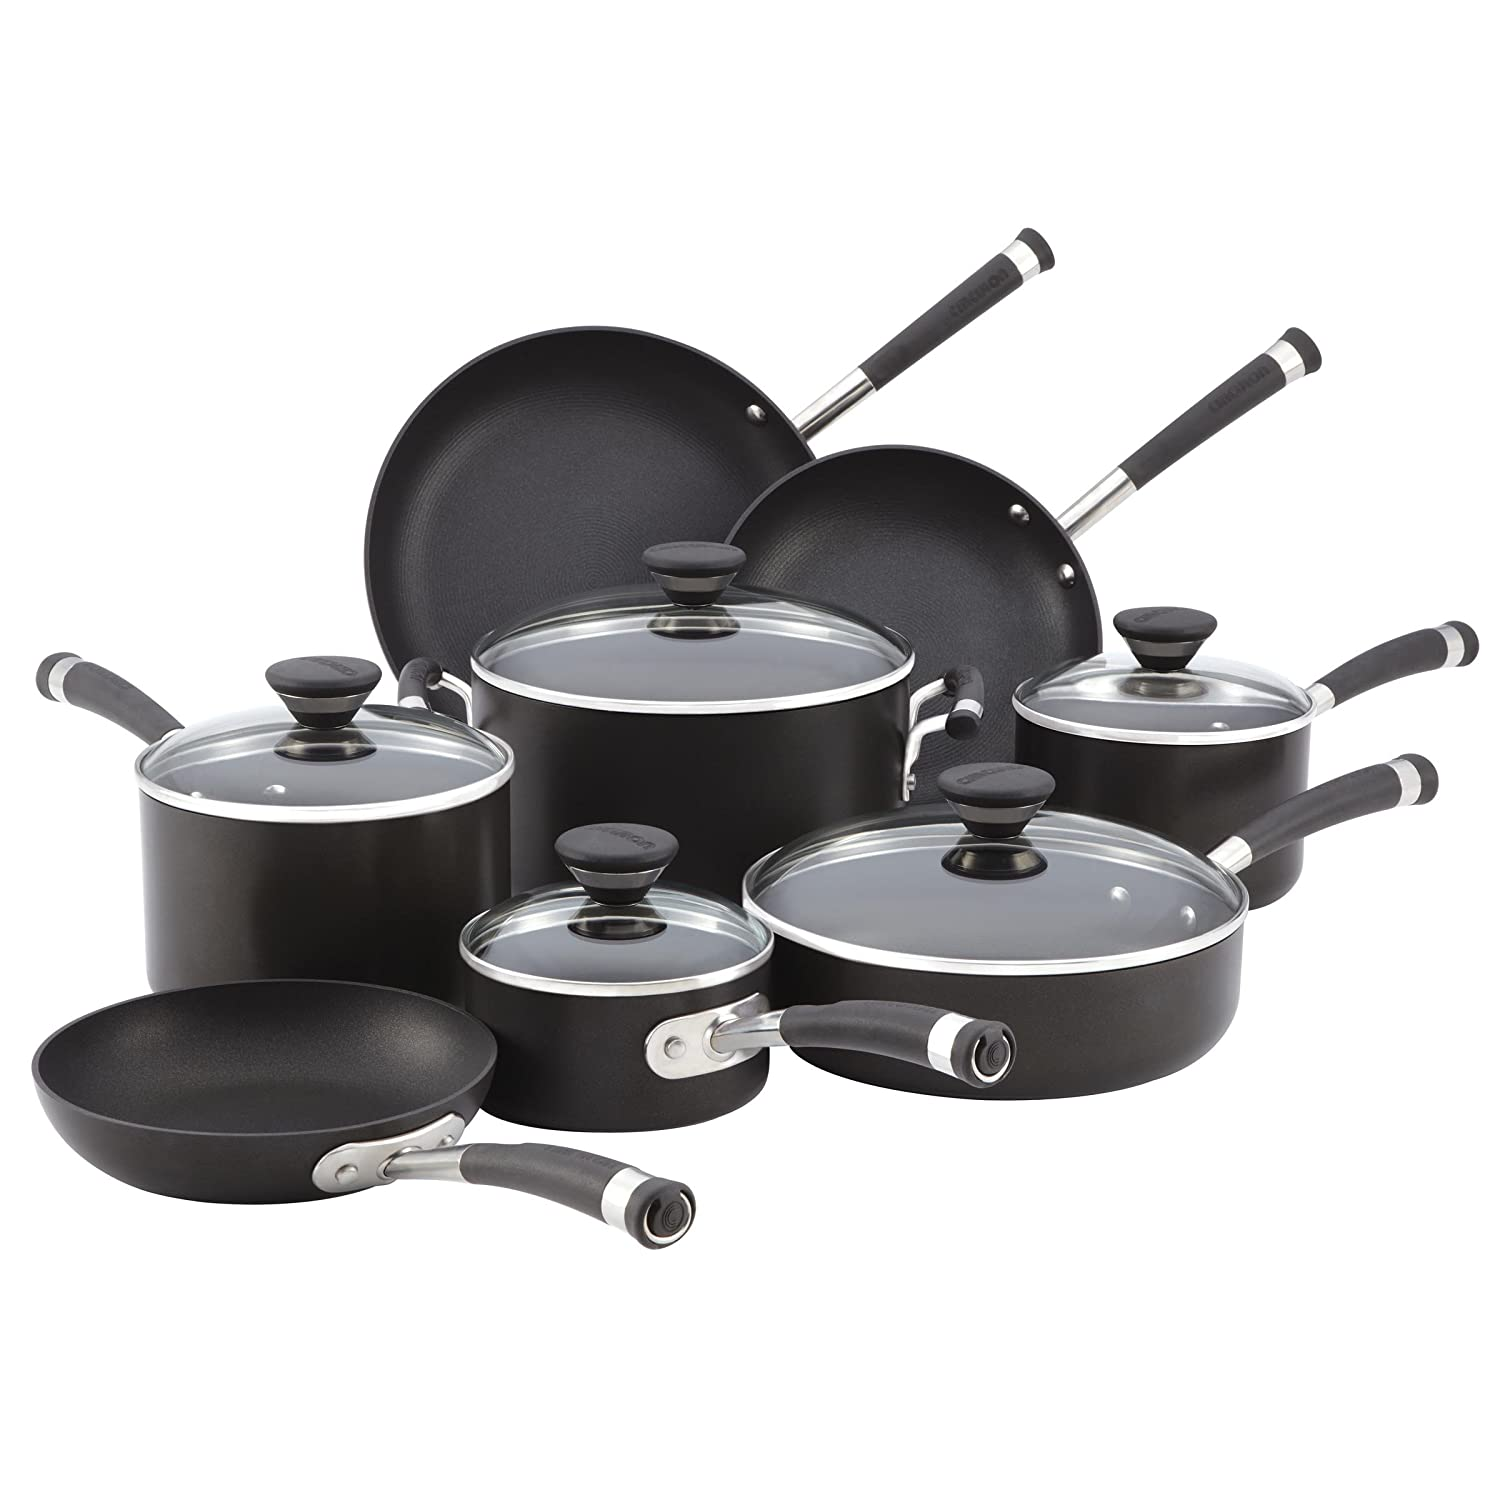 Top 10 Best Induction Cookware (2020 Reviews & Buying Guide) 8